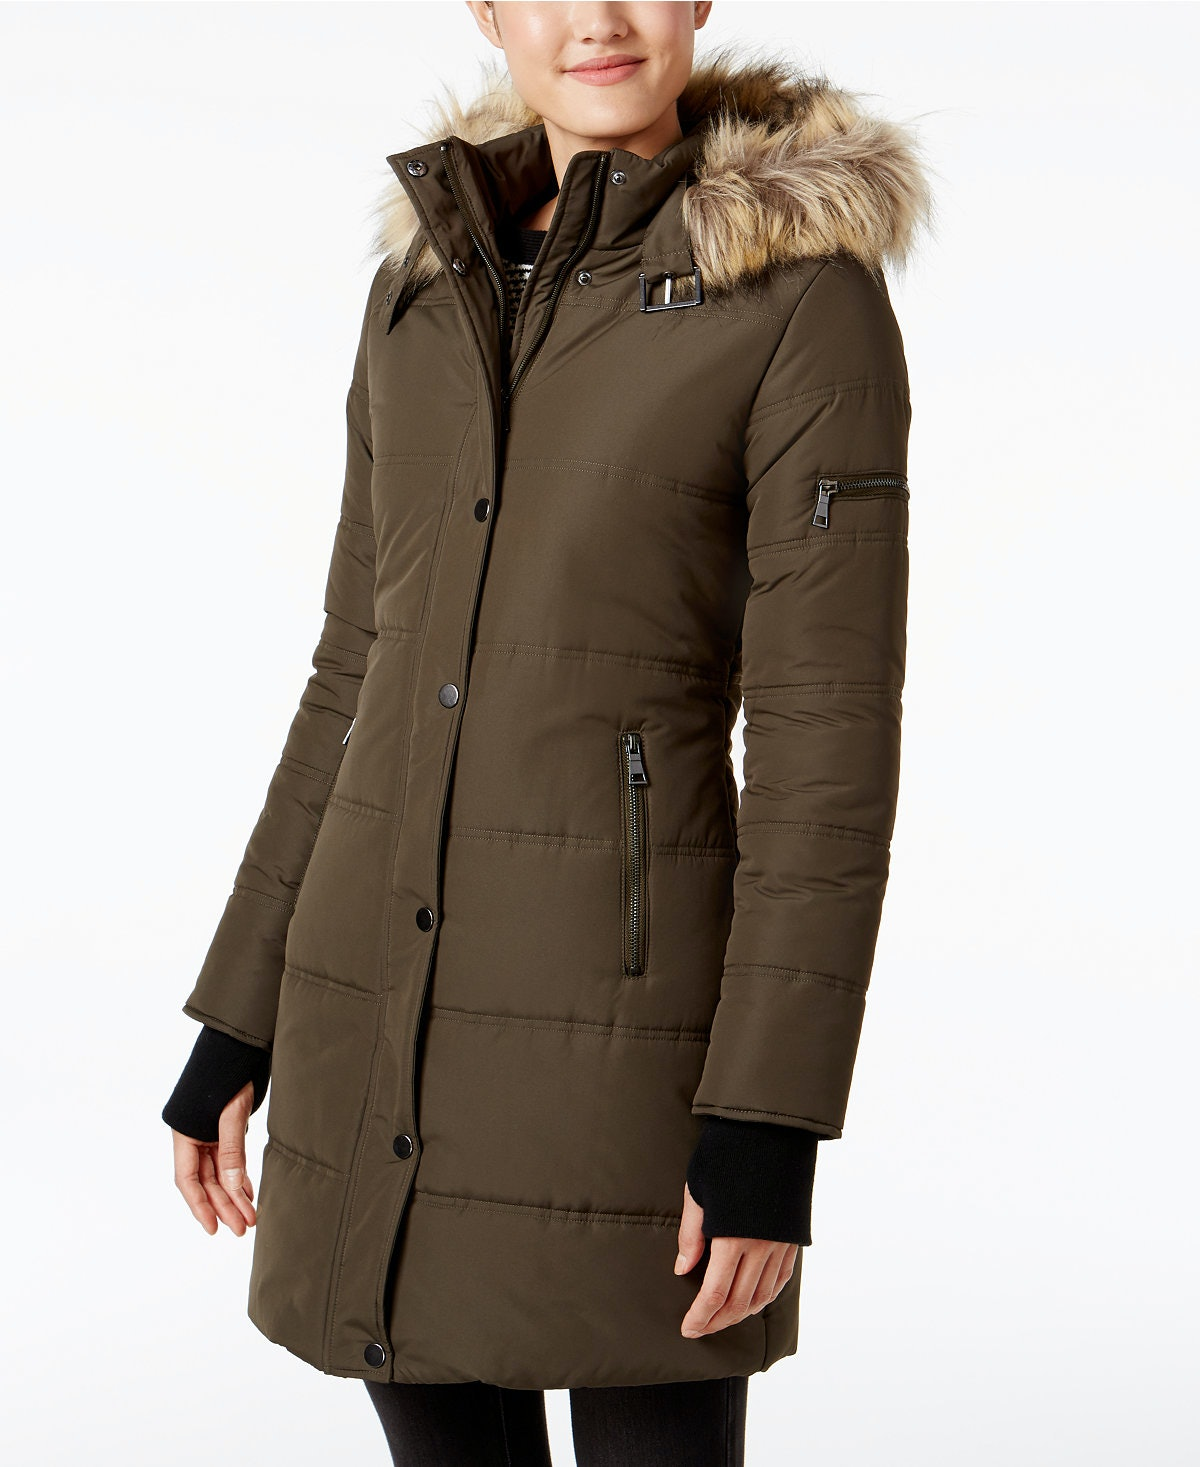 d1faf34d8 15 Warm Winter Coats Under $100 That Will Actually Keep You Toasty